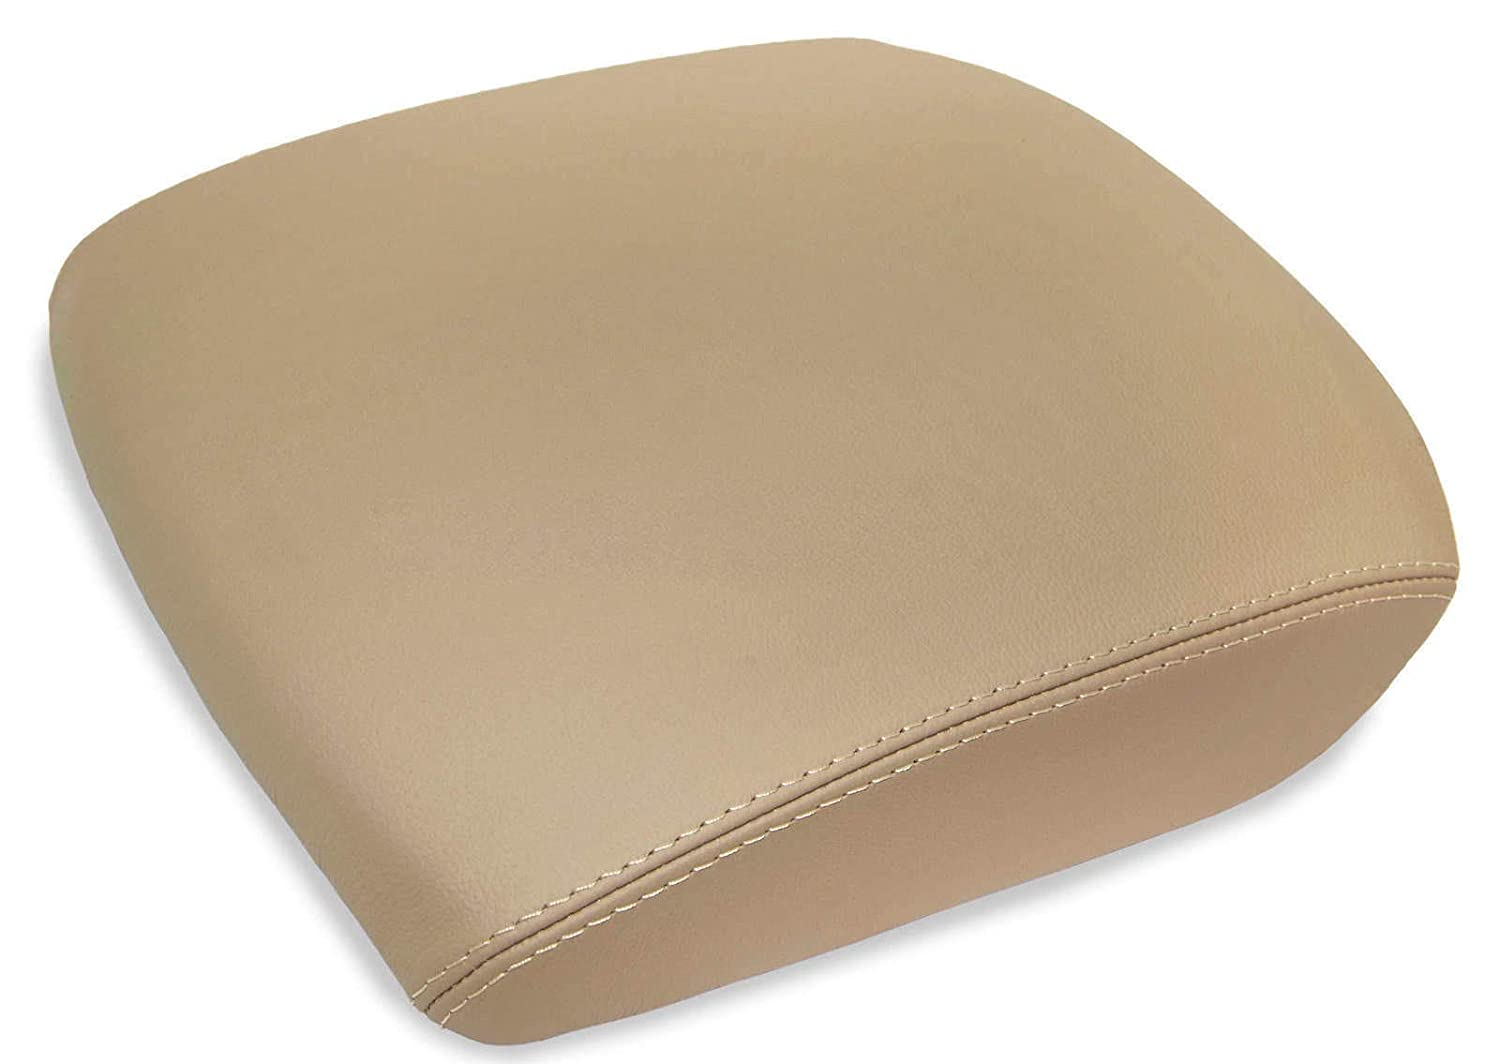 DSparts Fits For 2009-2013 Honda Pilot Leather CONSOLE LID ARMREST COVER Leather Part Only Beige